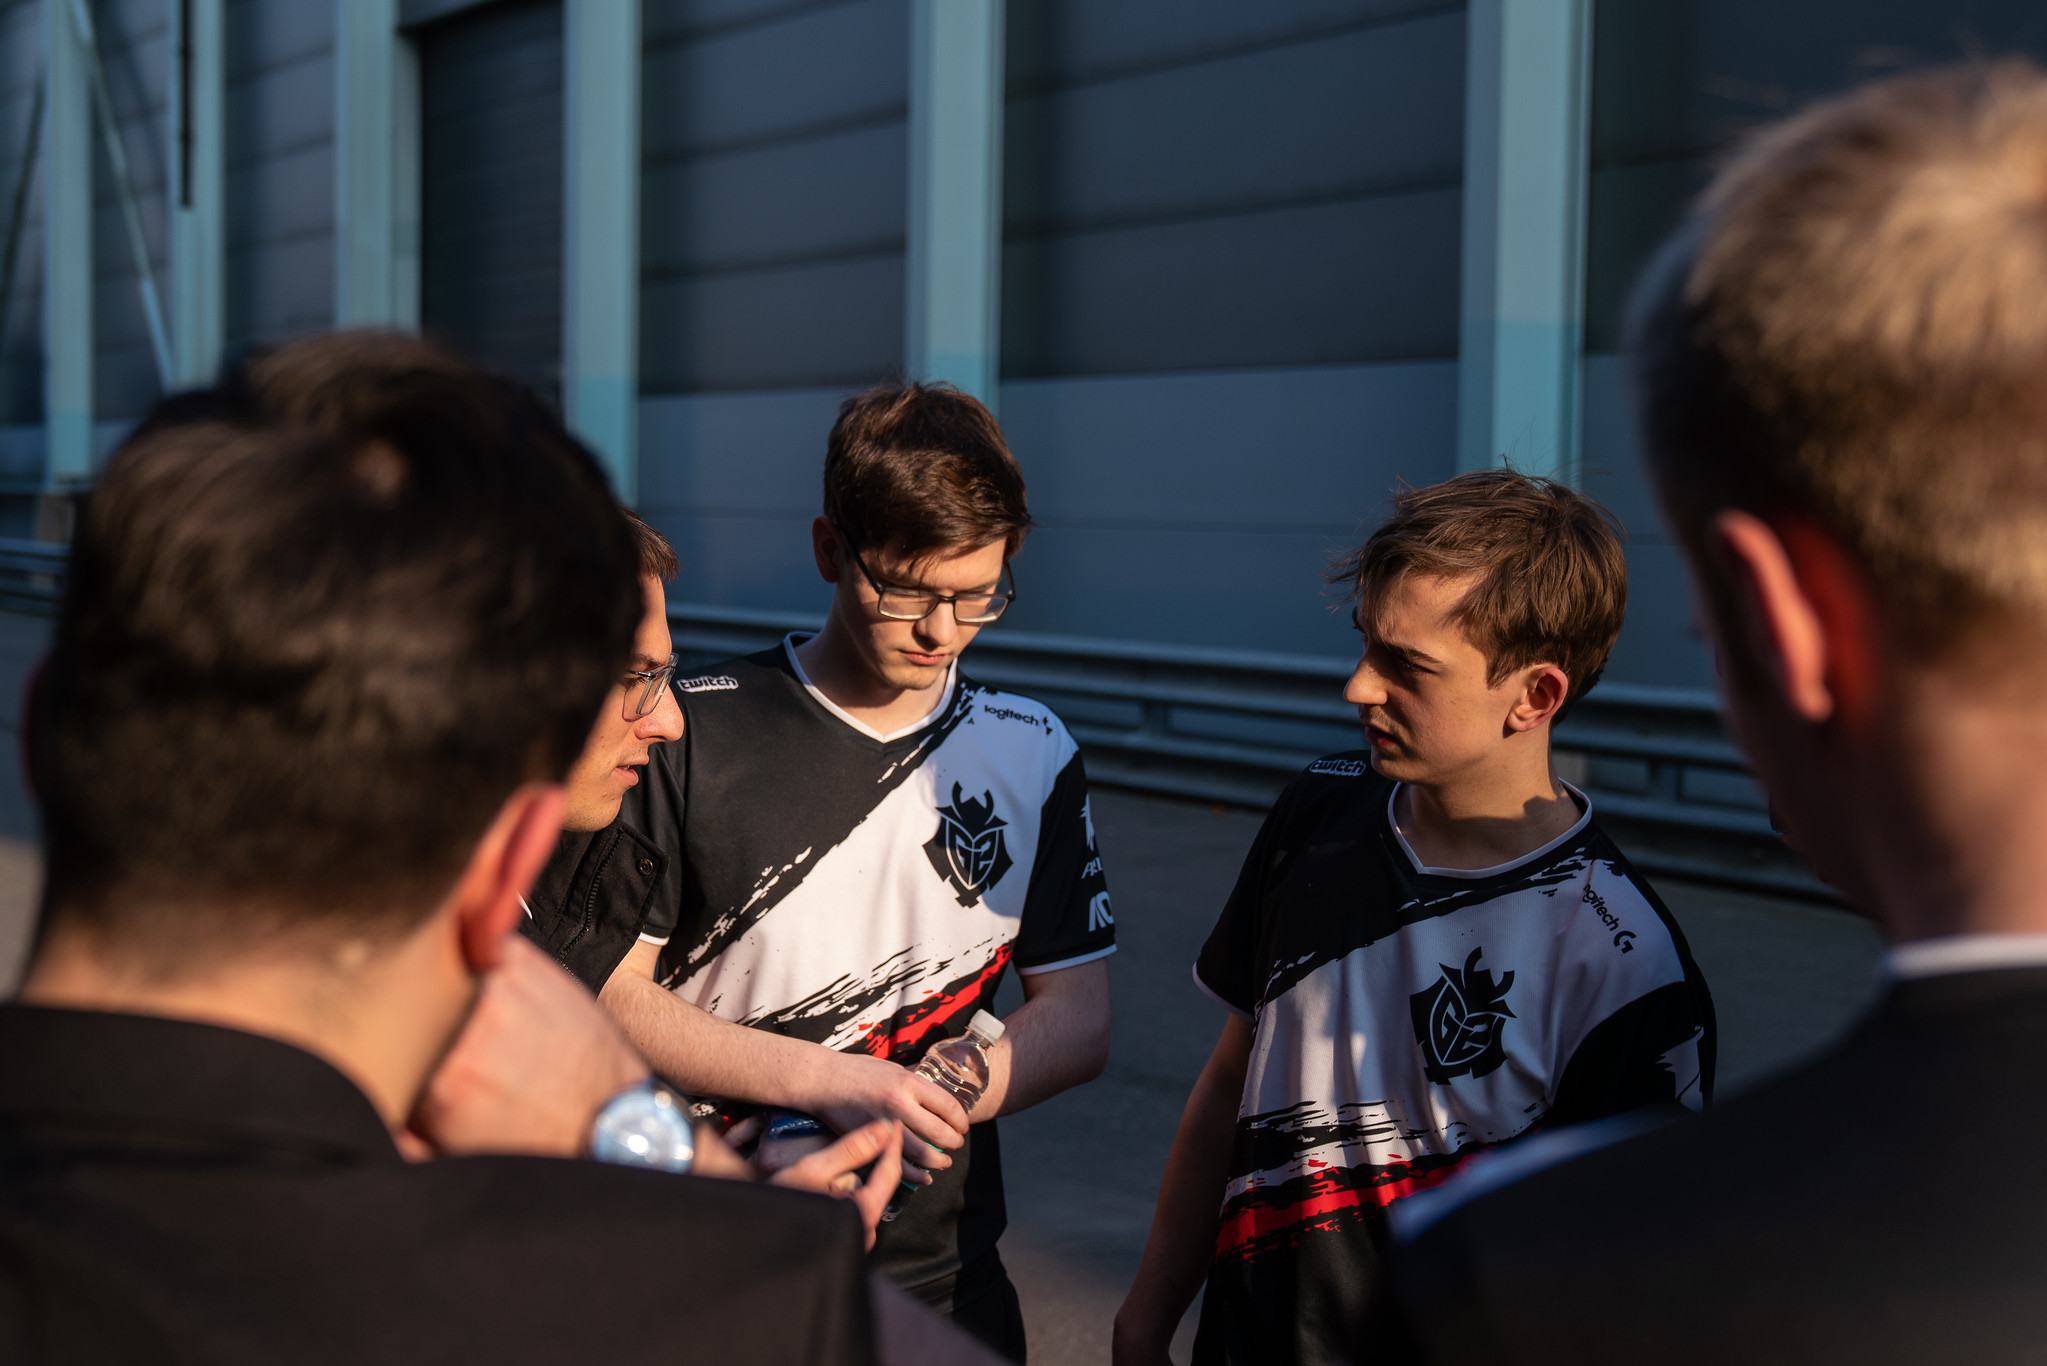 Mikyx's ongoing wrist problems cast a shadow over G2's victory image